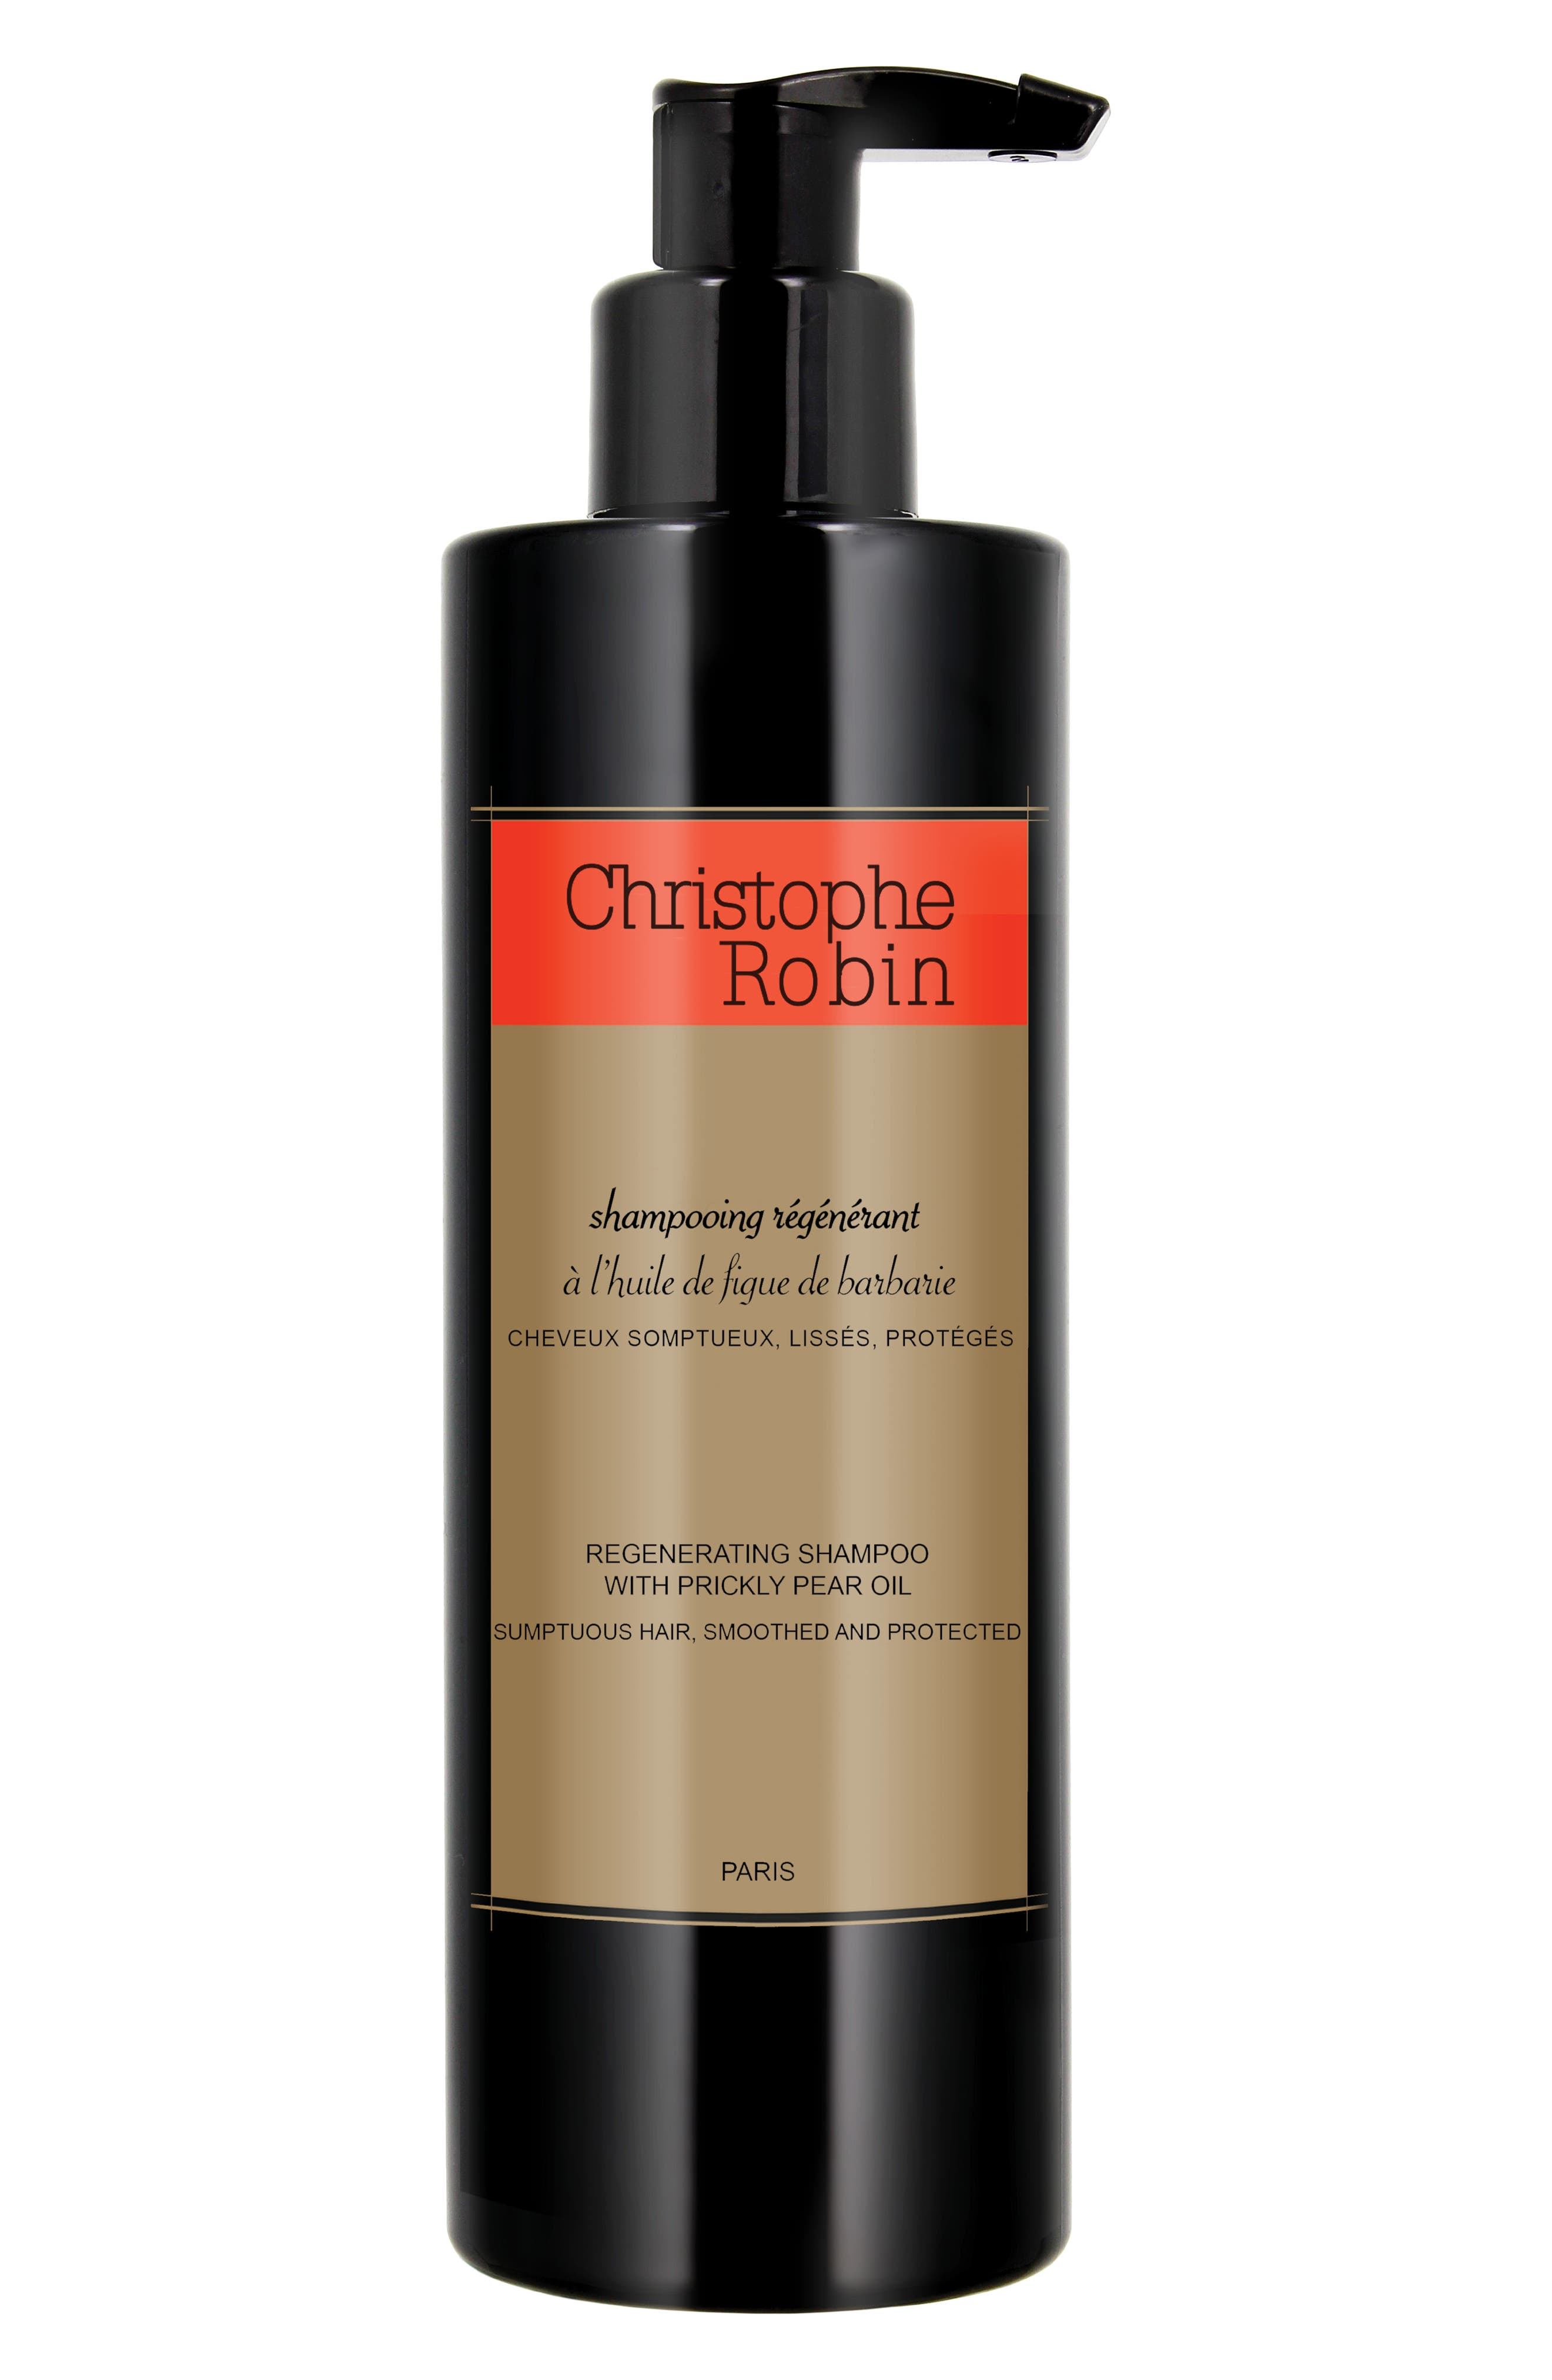 CHRISTOPHE ROBIN,                             SPACE.NK.apothecary Christophe Robin Regenerating Shampoo with Prickly Pear Oil,                             Main thumbnail 1, color,                             NO COLOR